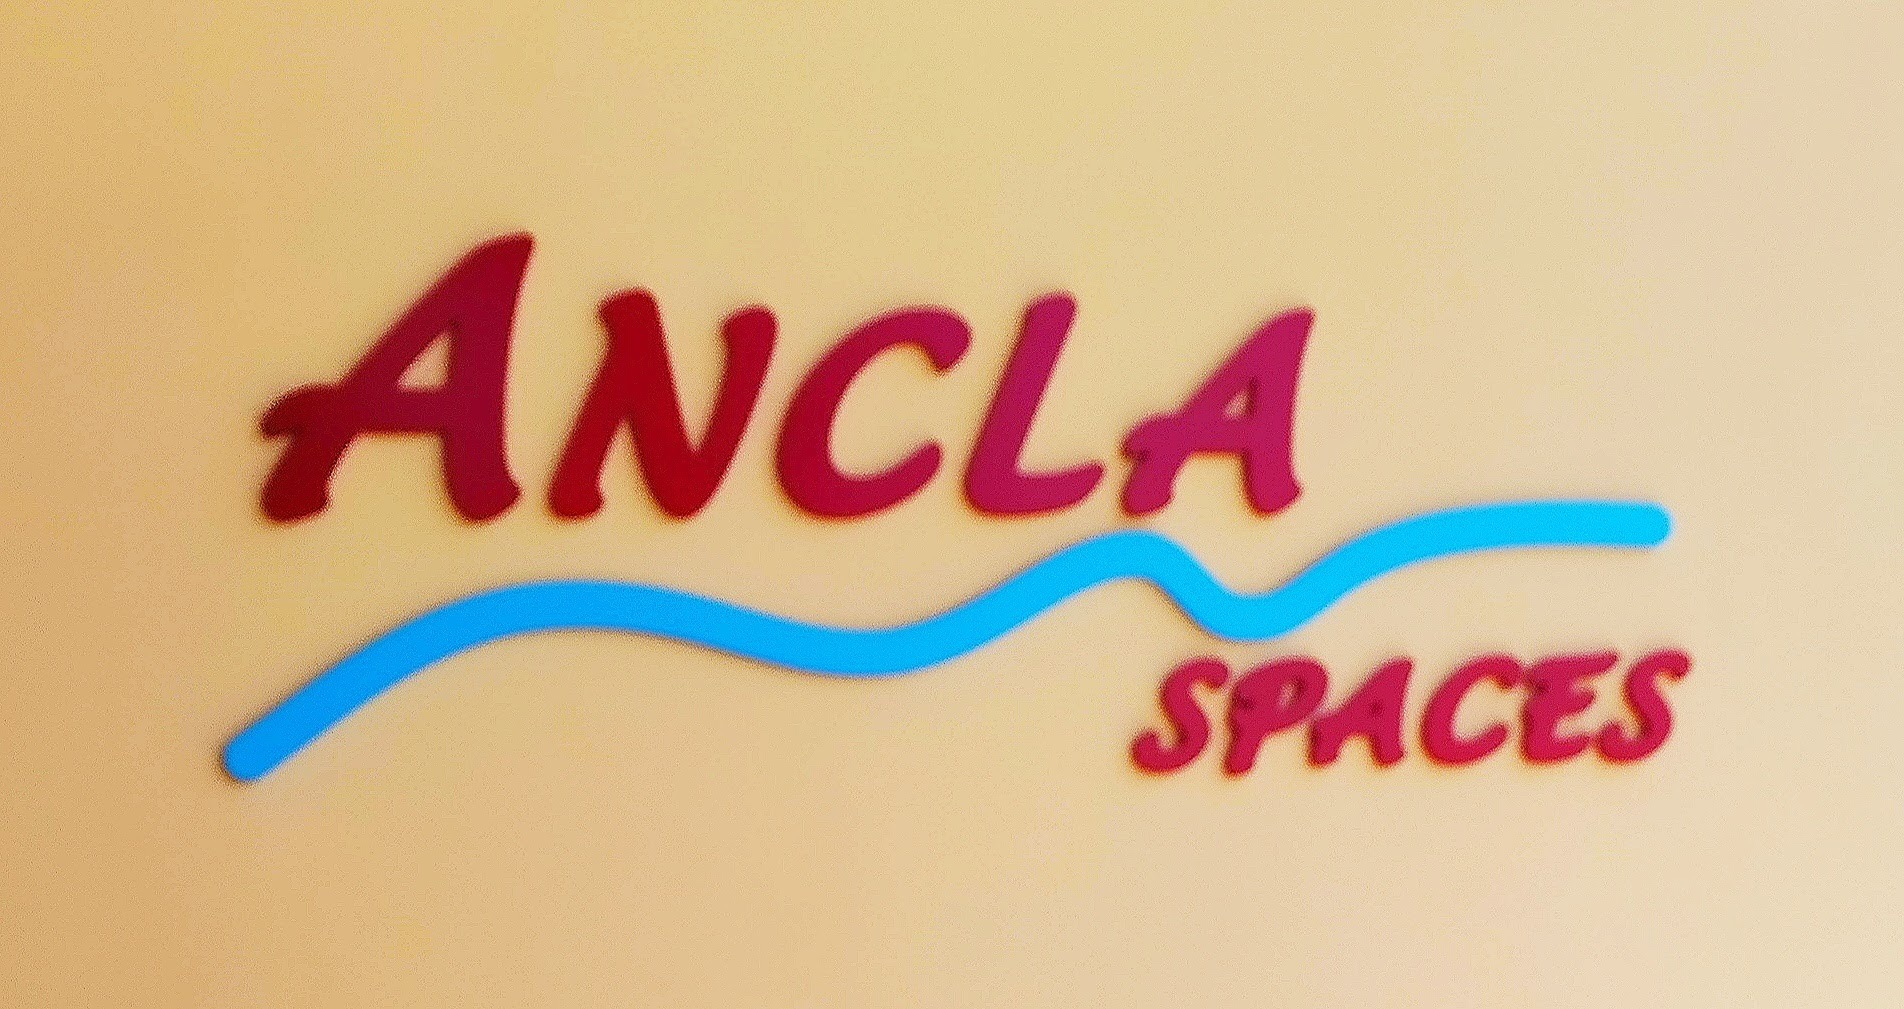 ANCLA SPACES